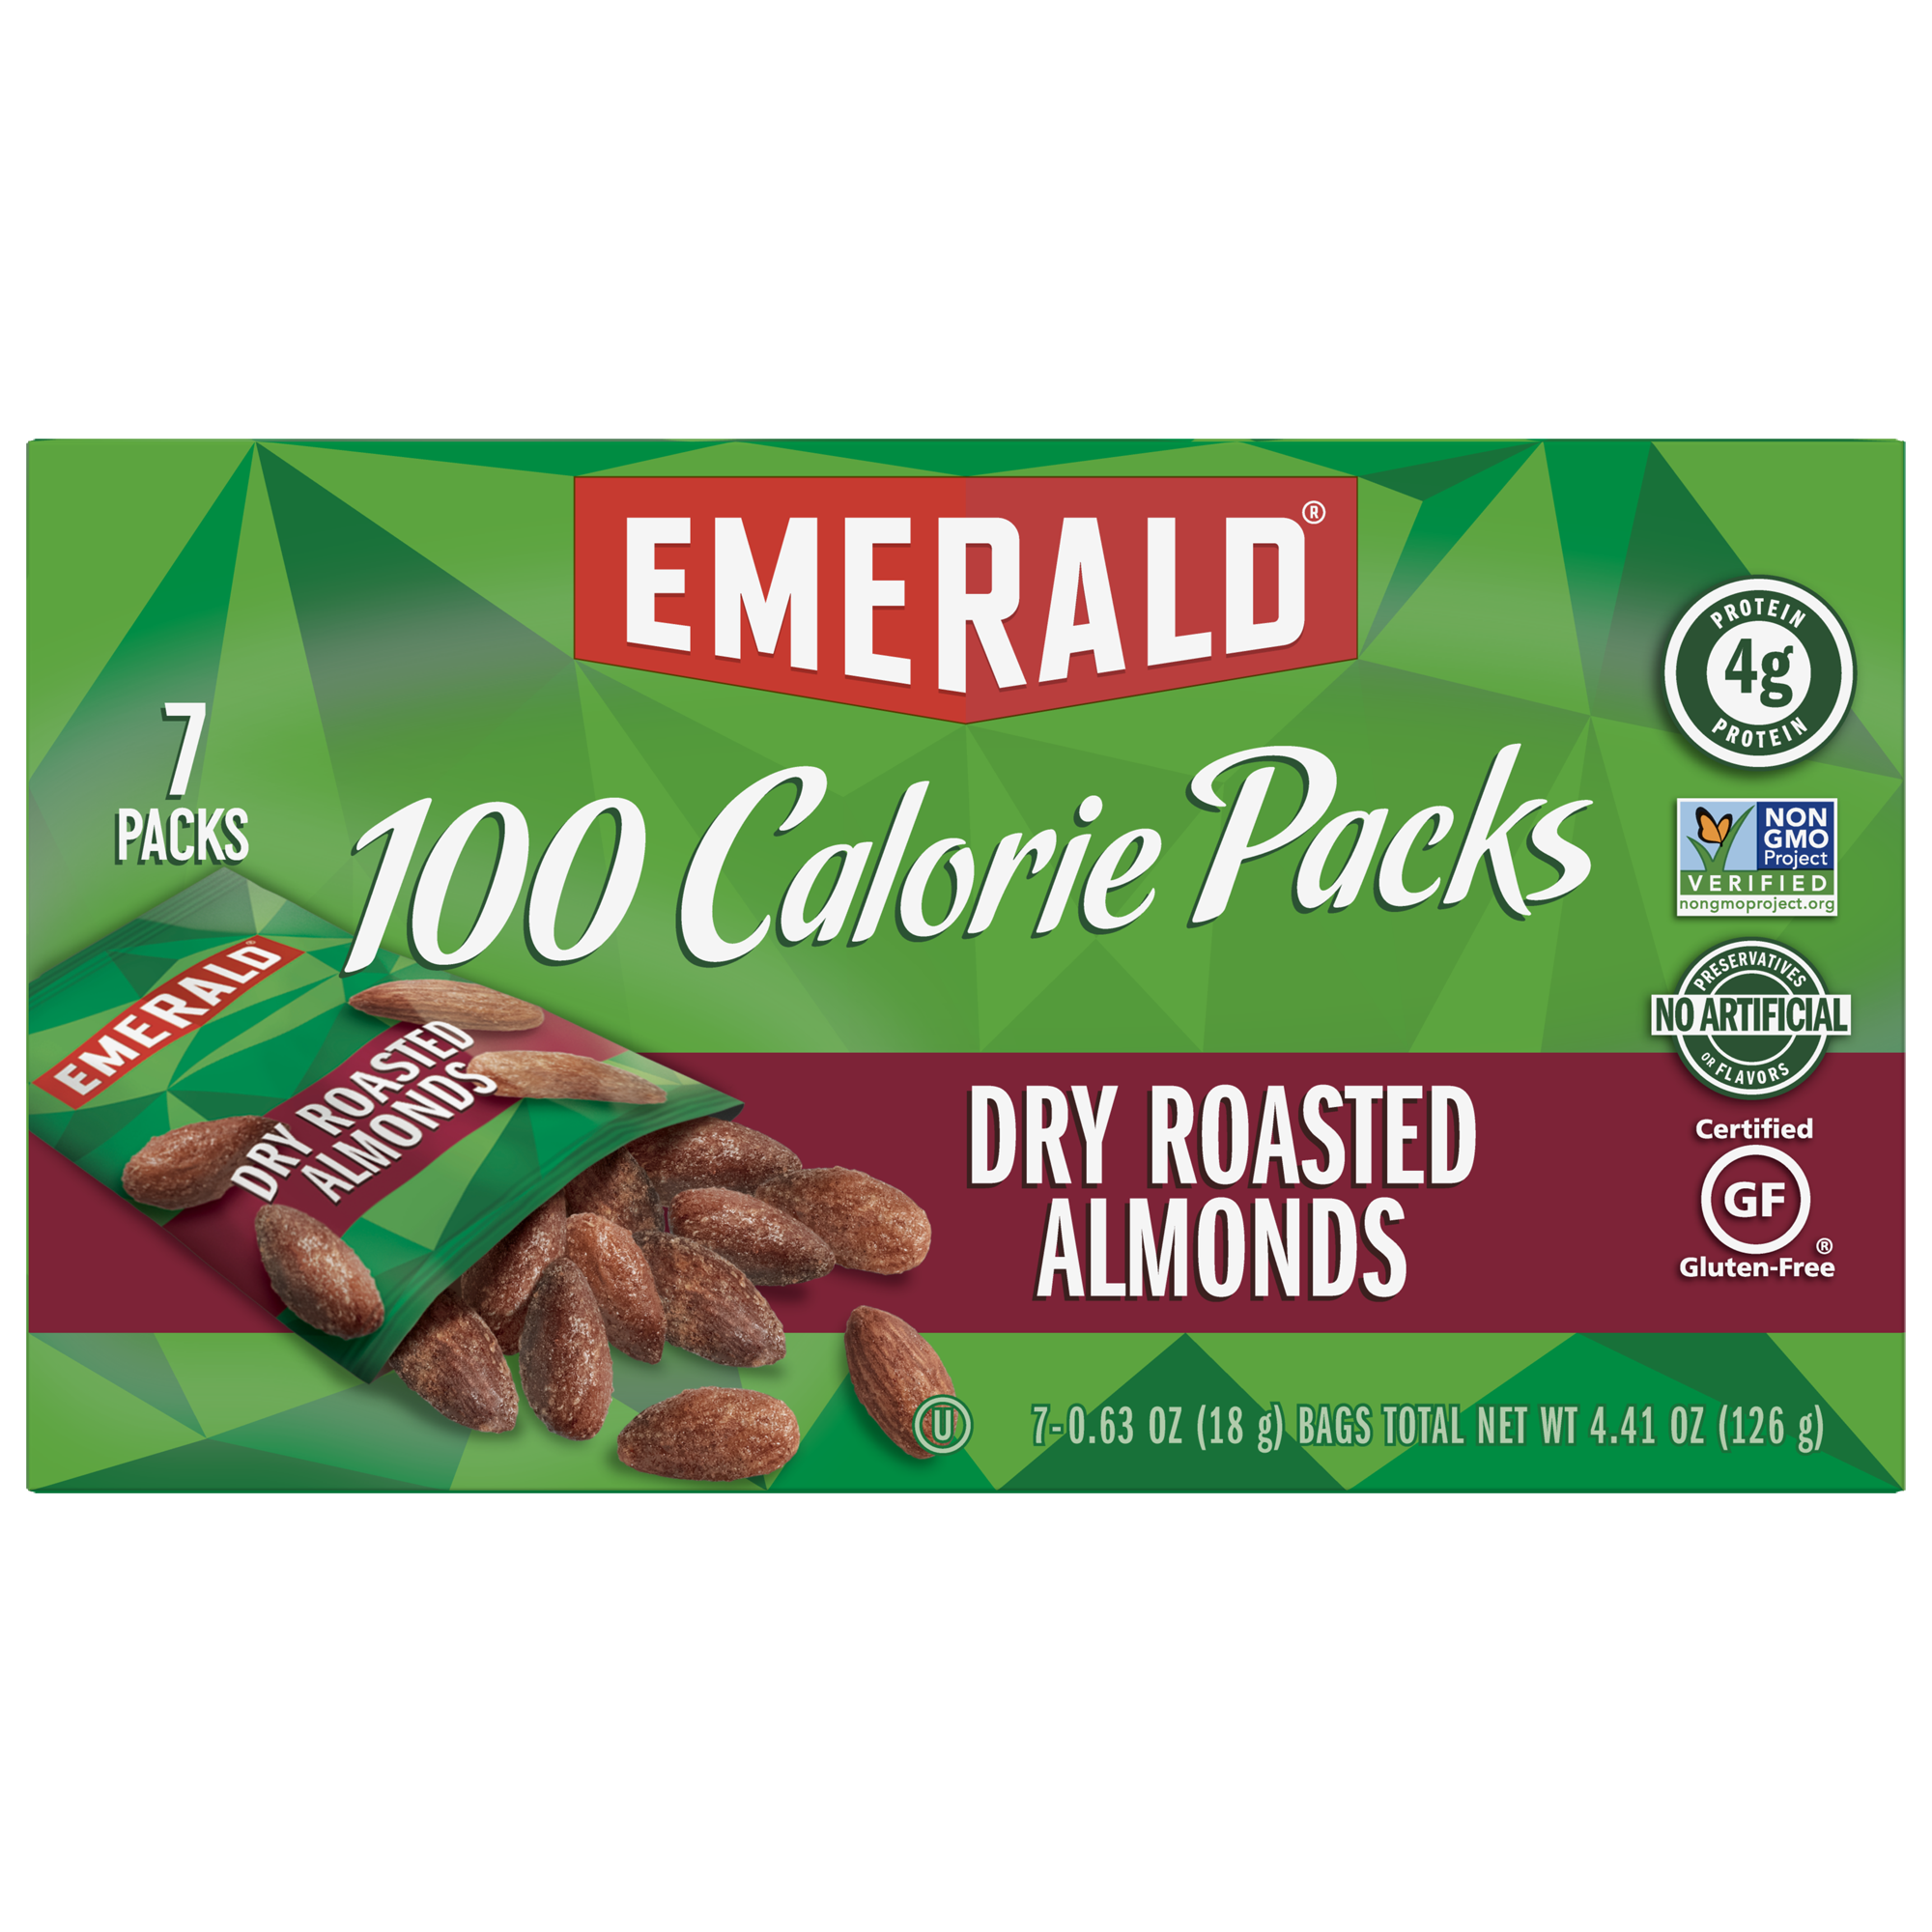 (2 Pack) Emerald Dry Roasted Almonds, 100 Calorie Packs, 7 Ct